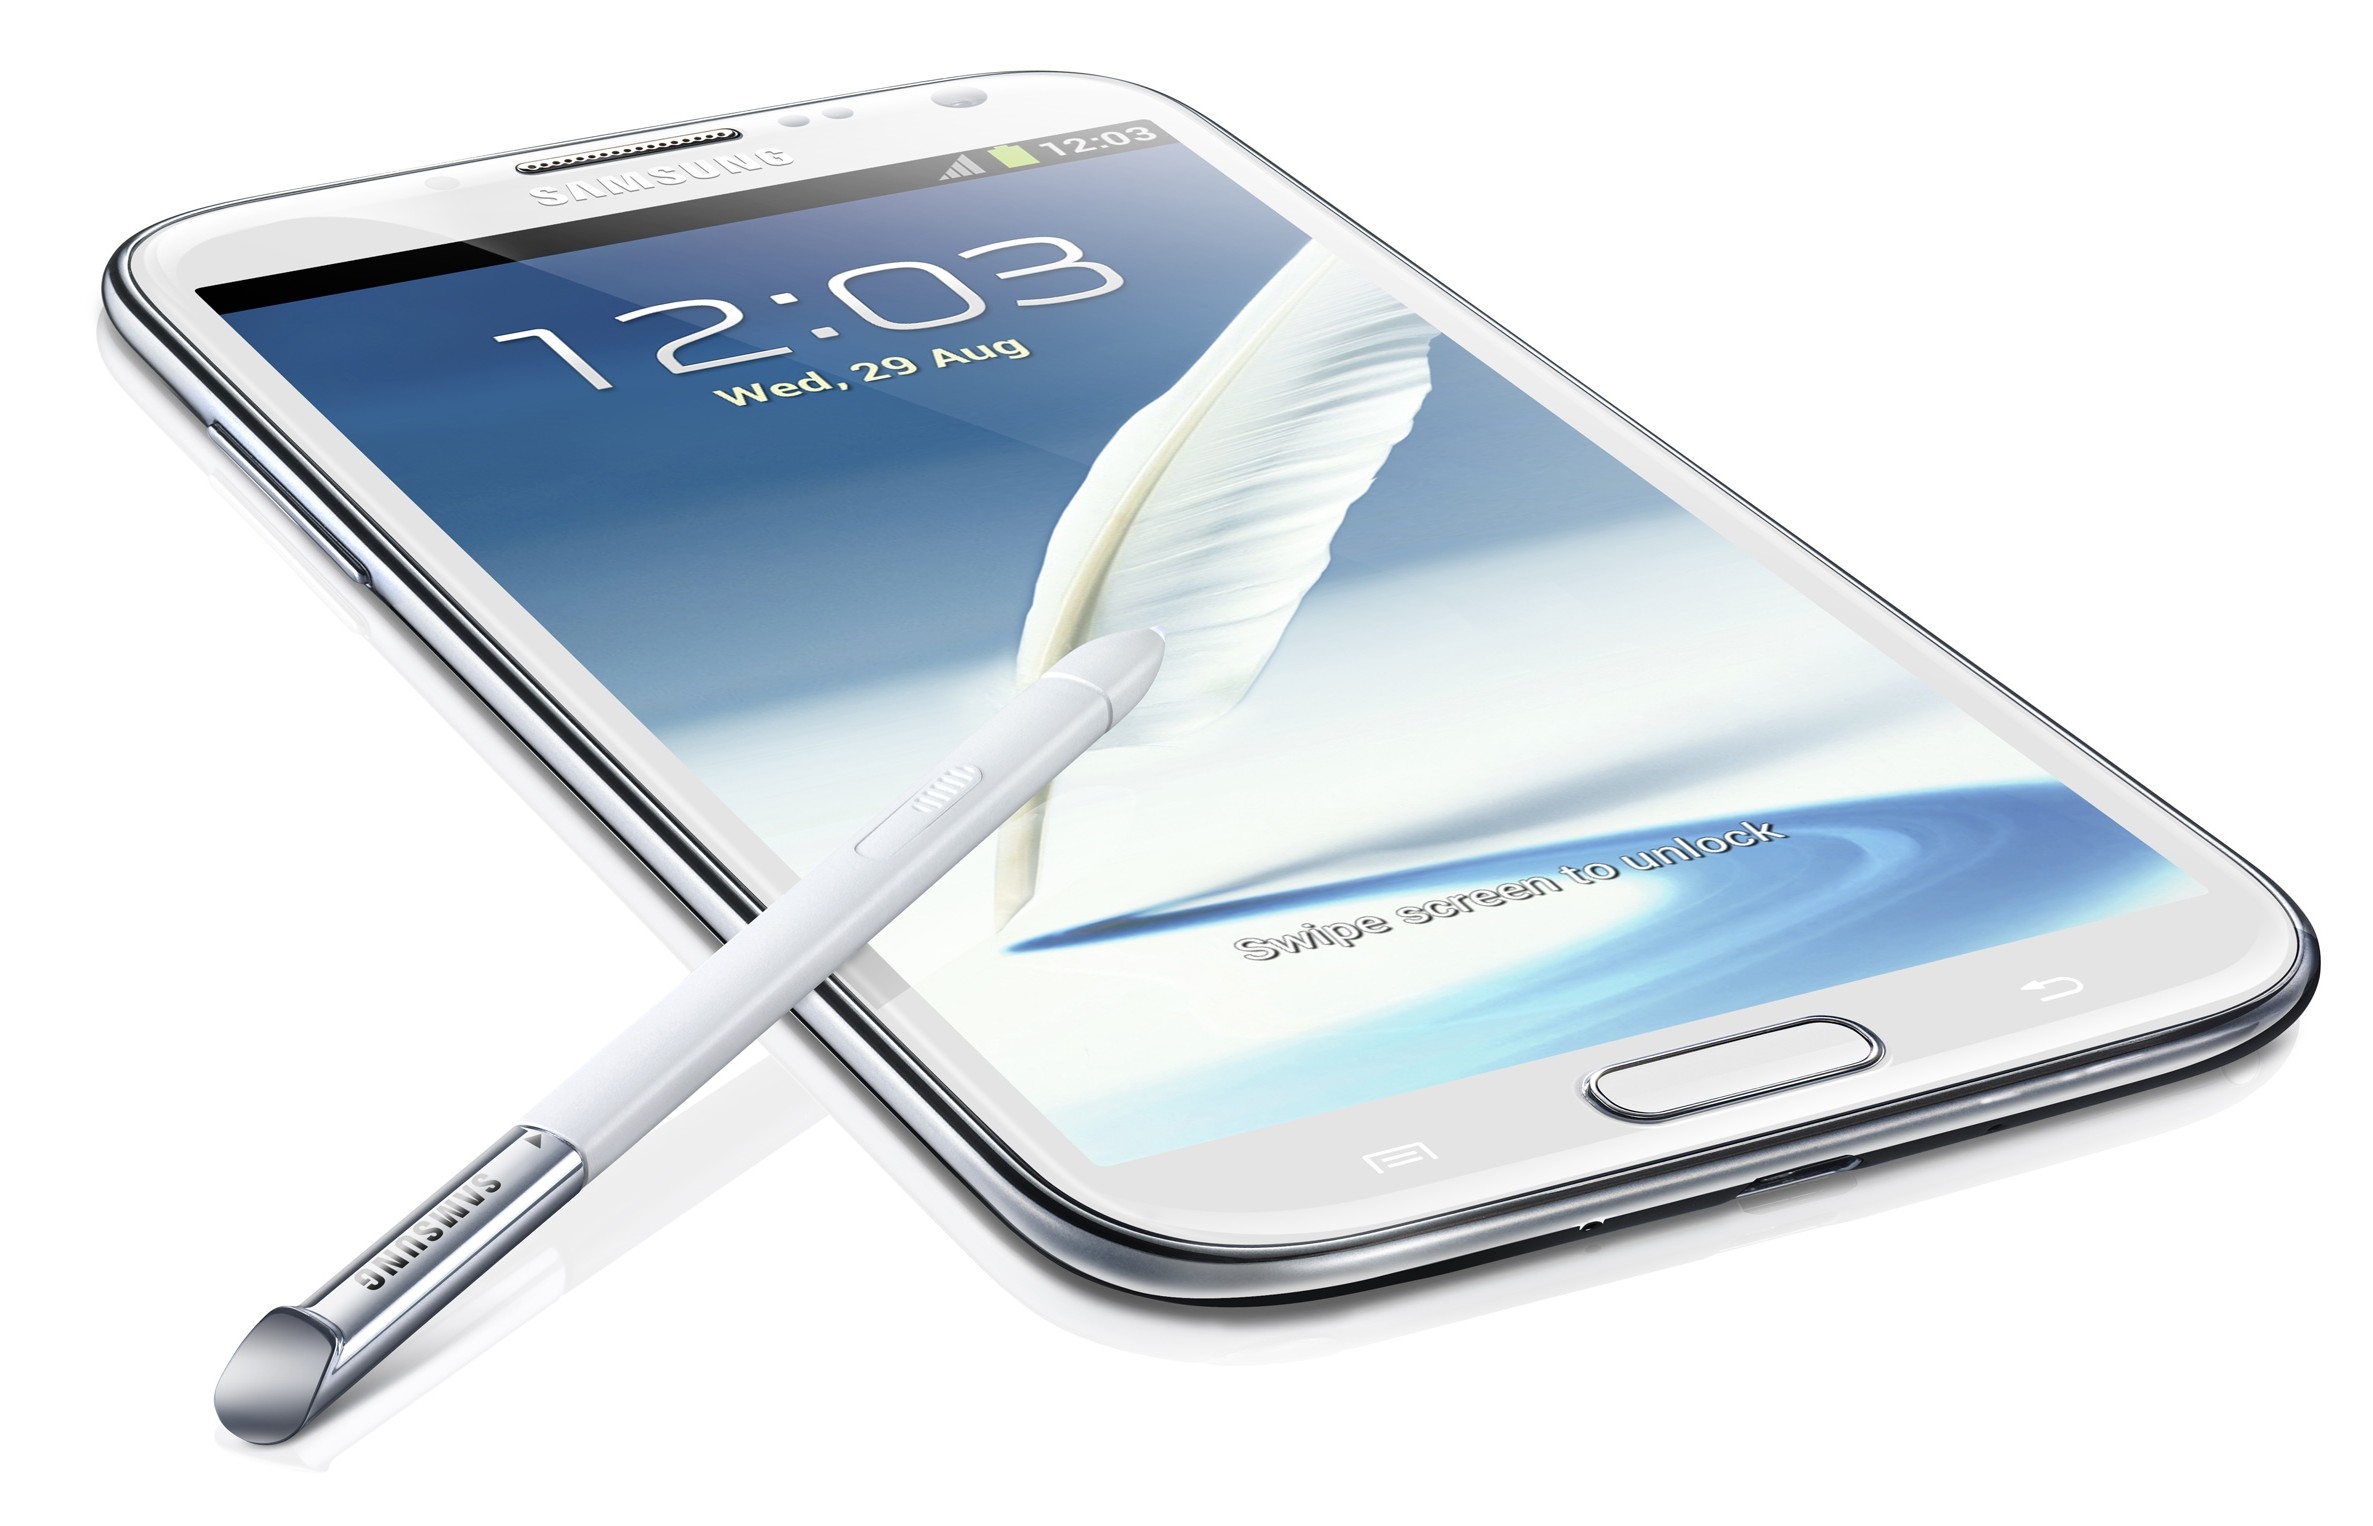 Samsung Galaxy Note 2 to Receive Android 4.3Jelly Bean OTA Update Soon